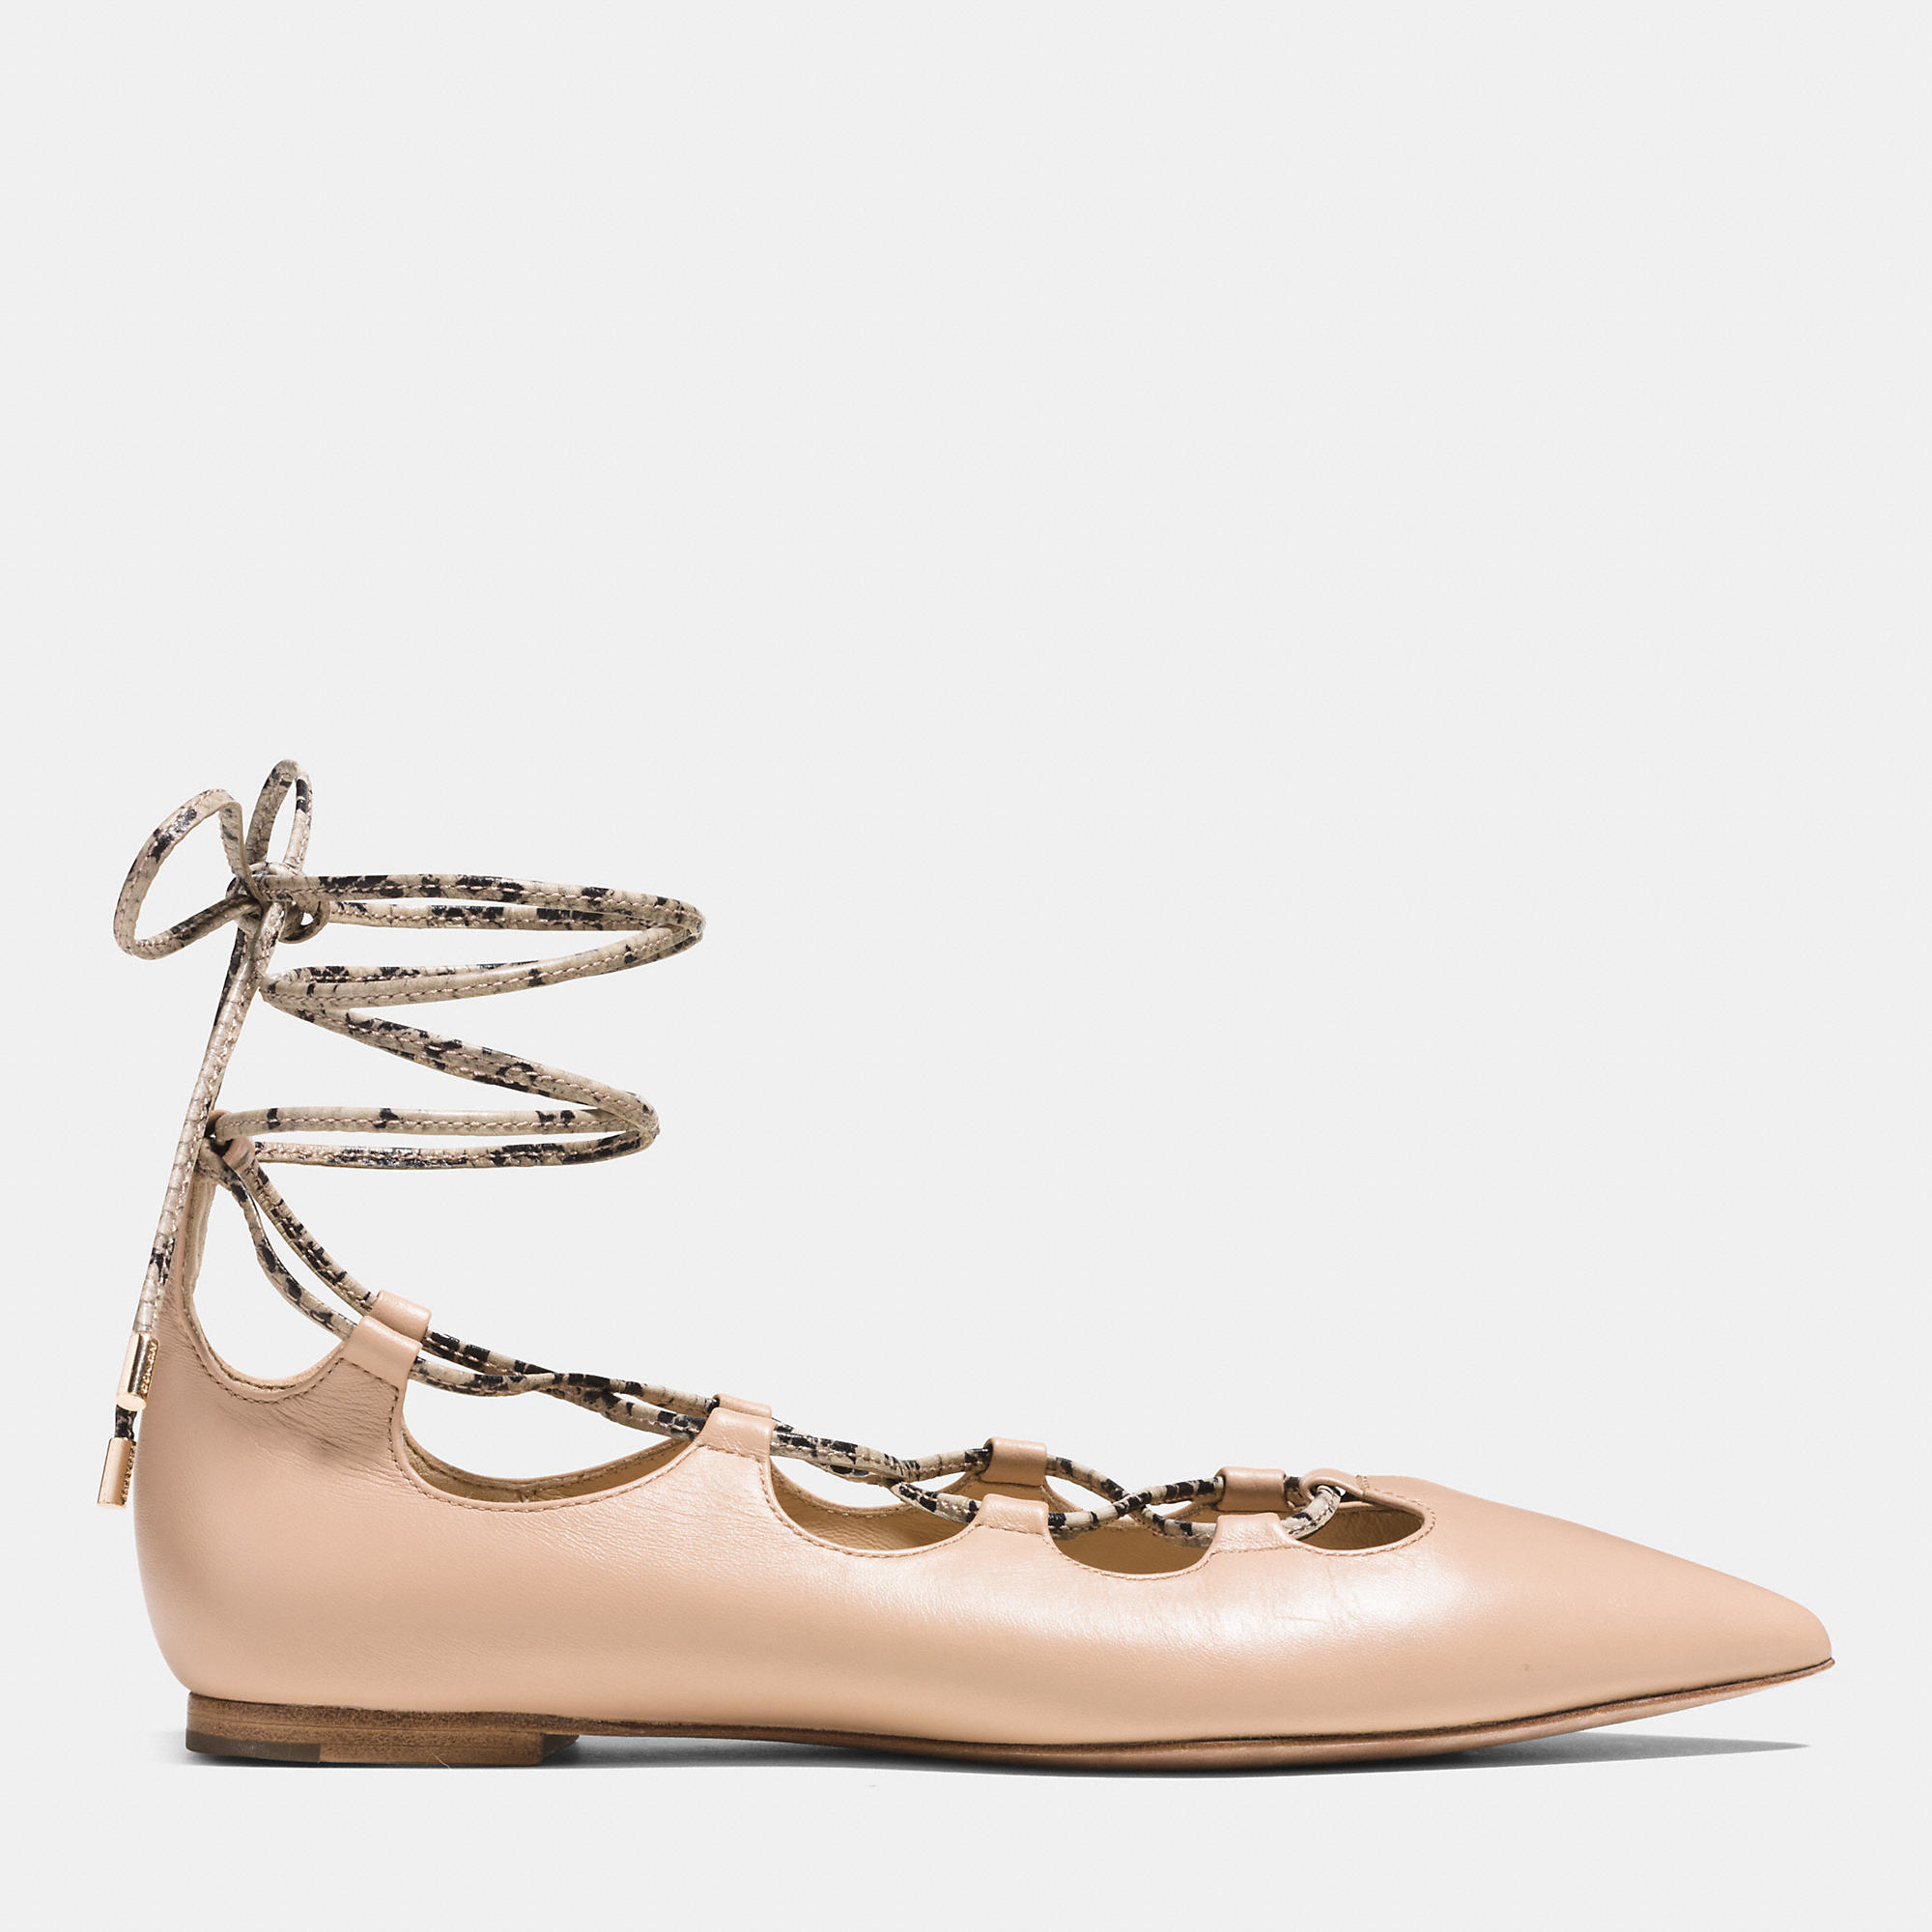 Coach Justine Leather Flats from china free shipping low price cheap discount authentic visit sale online cheap sale shop offer discount ebay uWa0OW